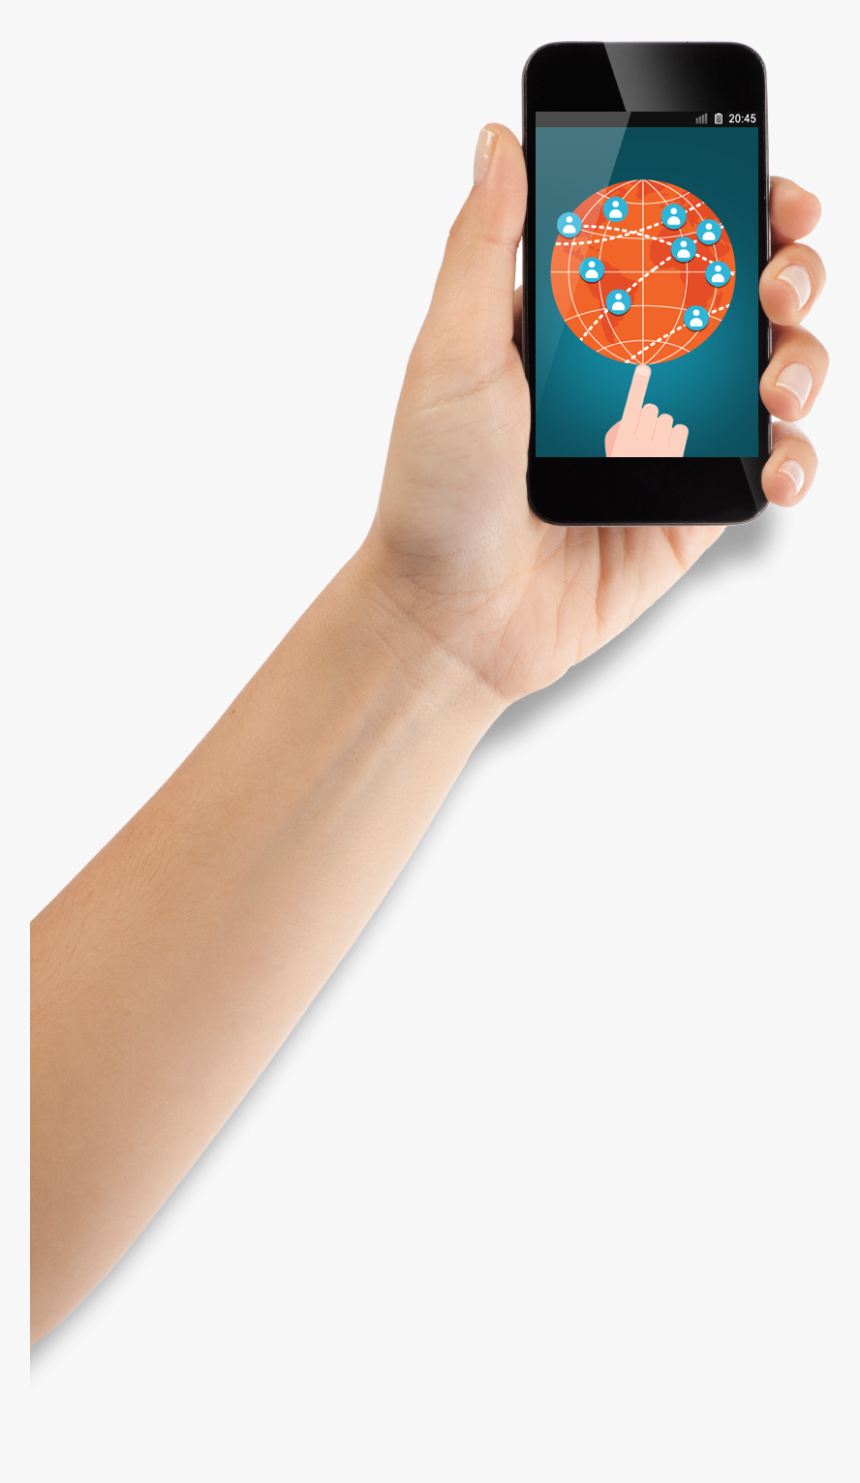 Arm Holding Phone Png, Transparent Png, Free Download